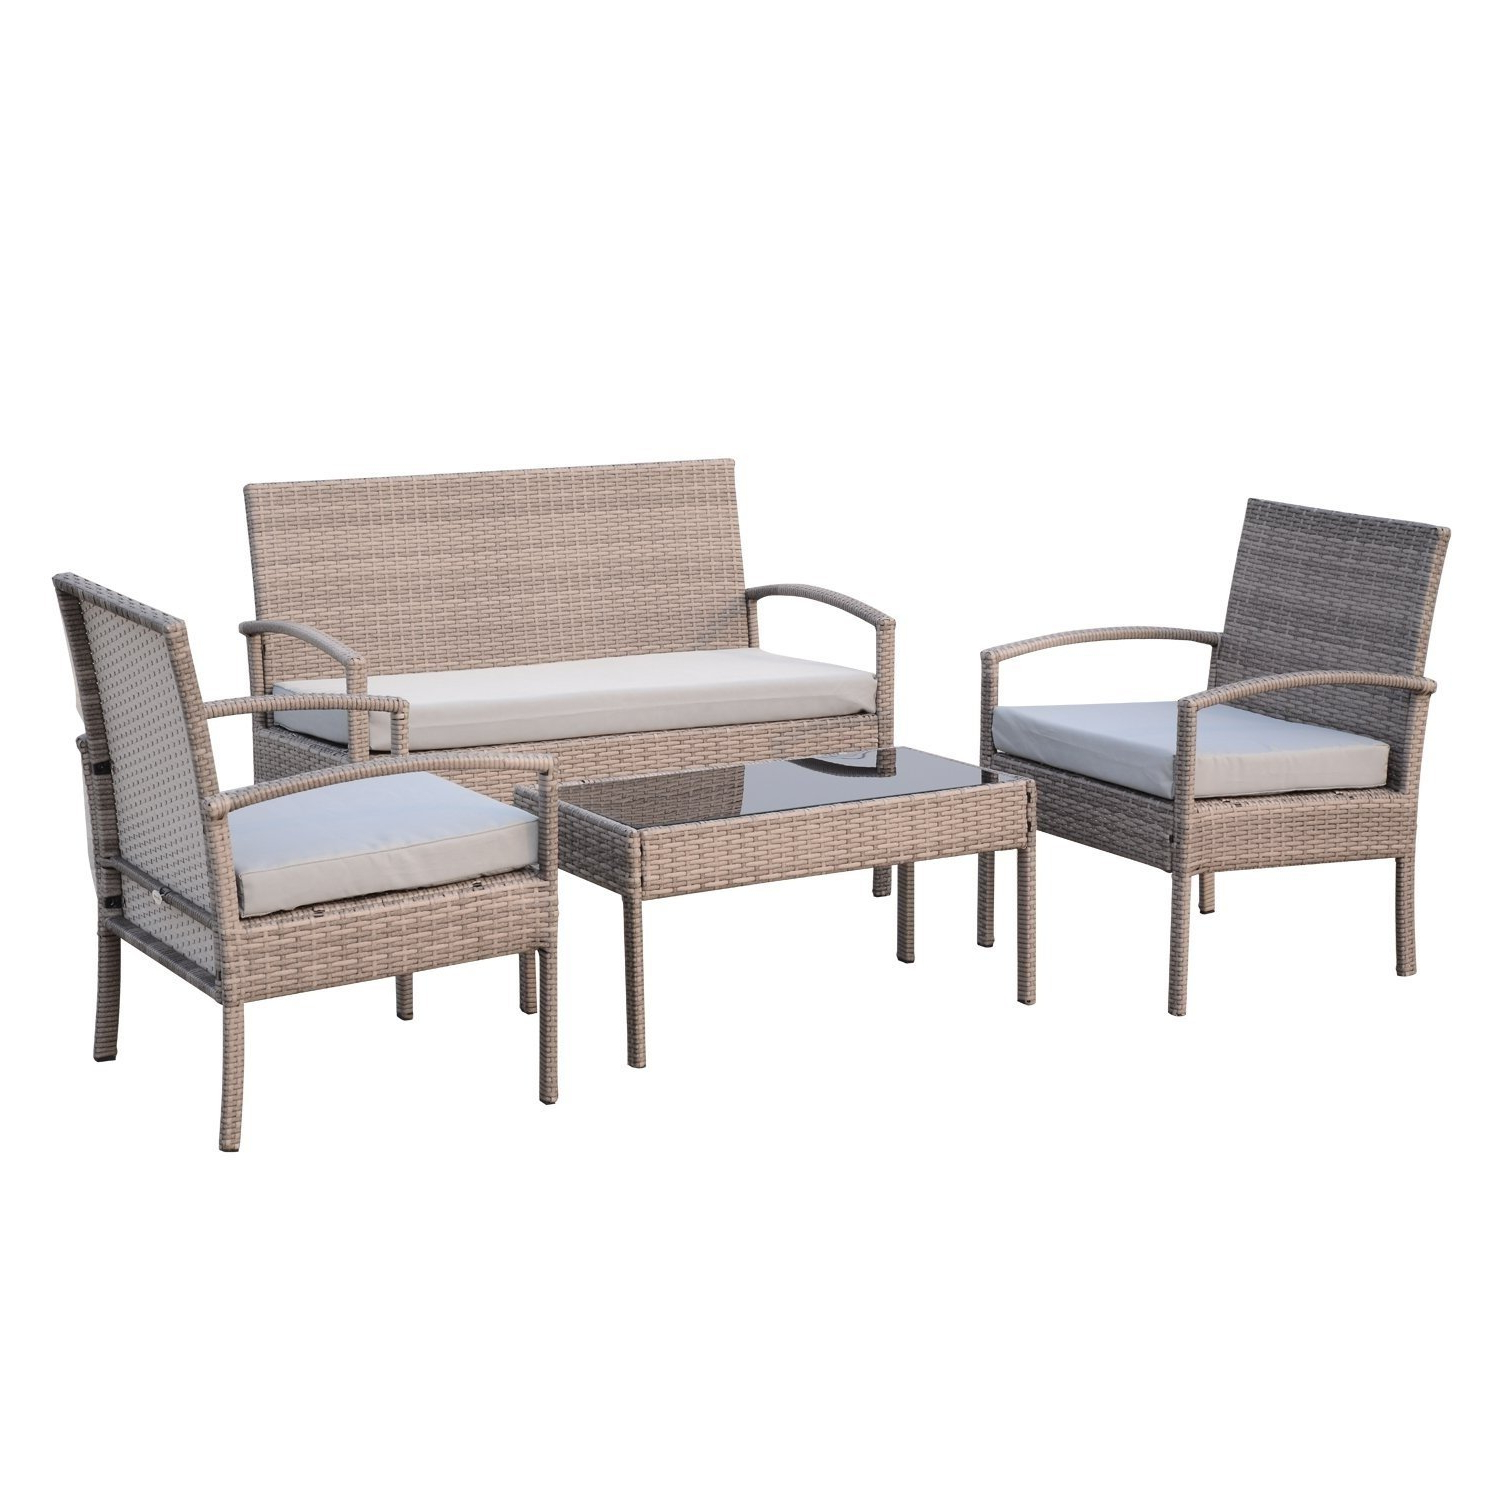 Outsunny 4 Piece Outdoor Rattan Wicker Patio Conversation For Newest Mullenax Outdoor Loveseats With Cushions (View 16 of 20)